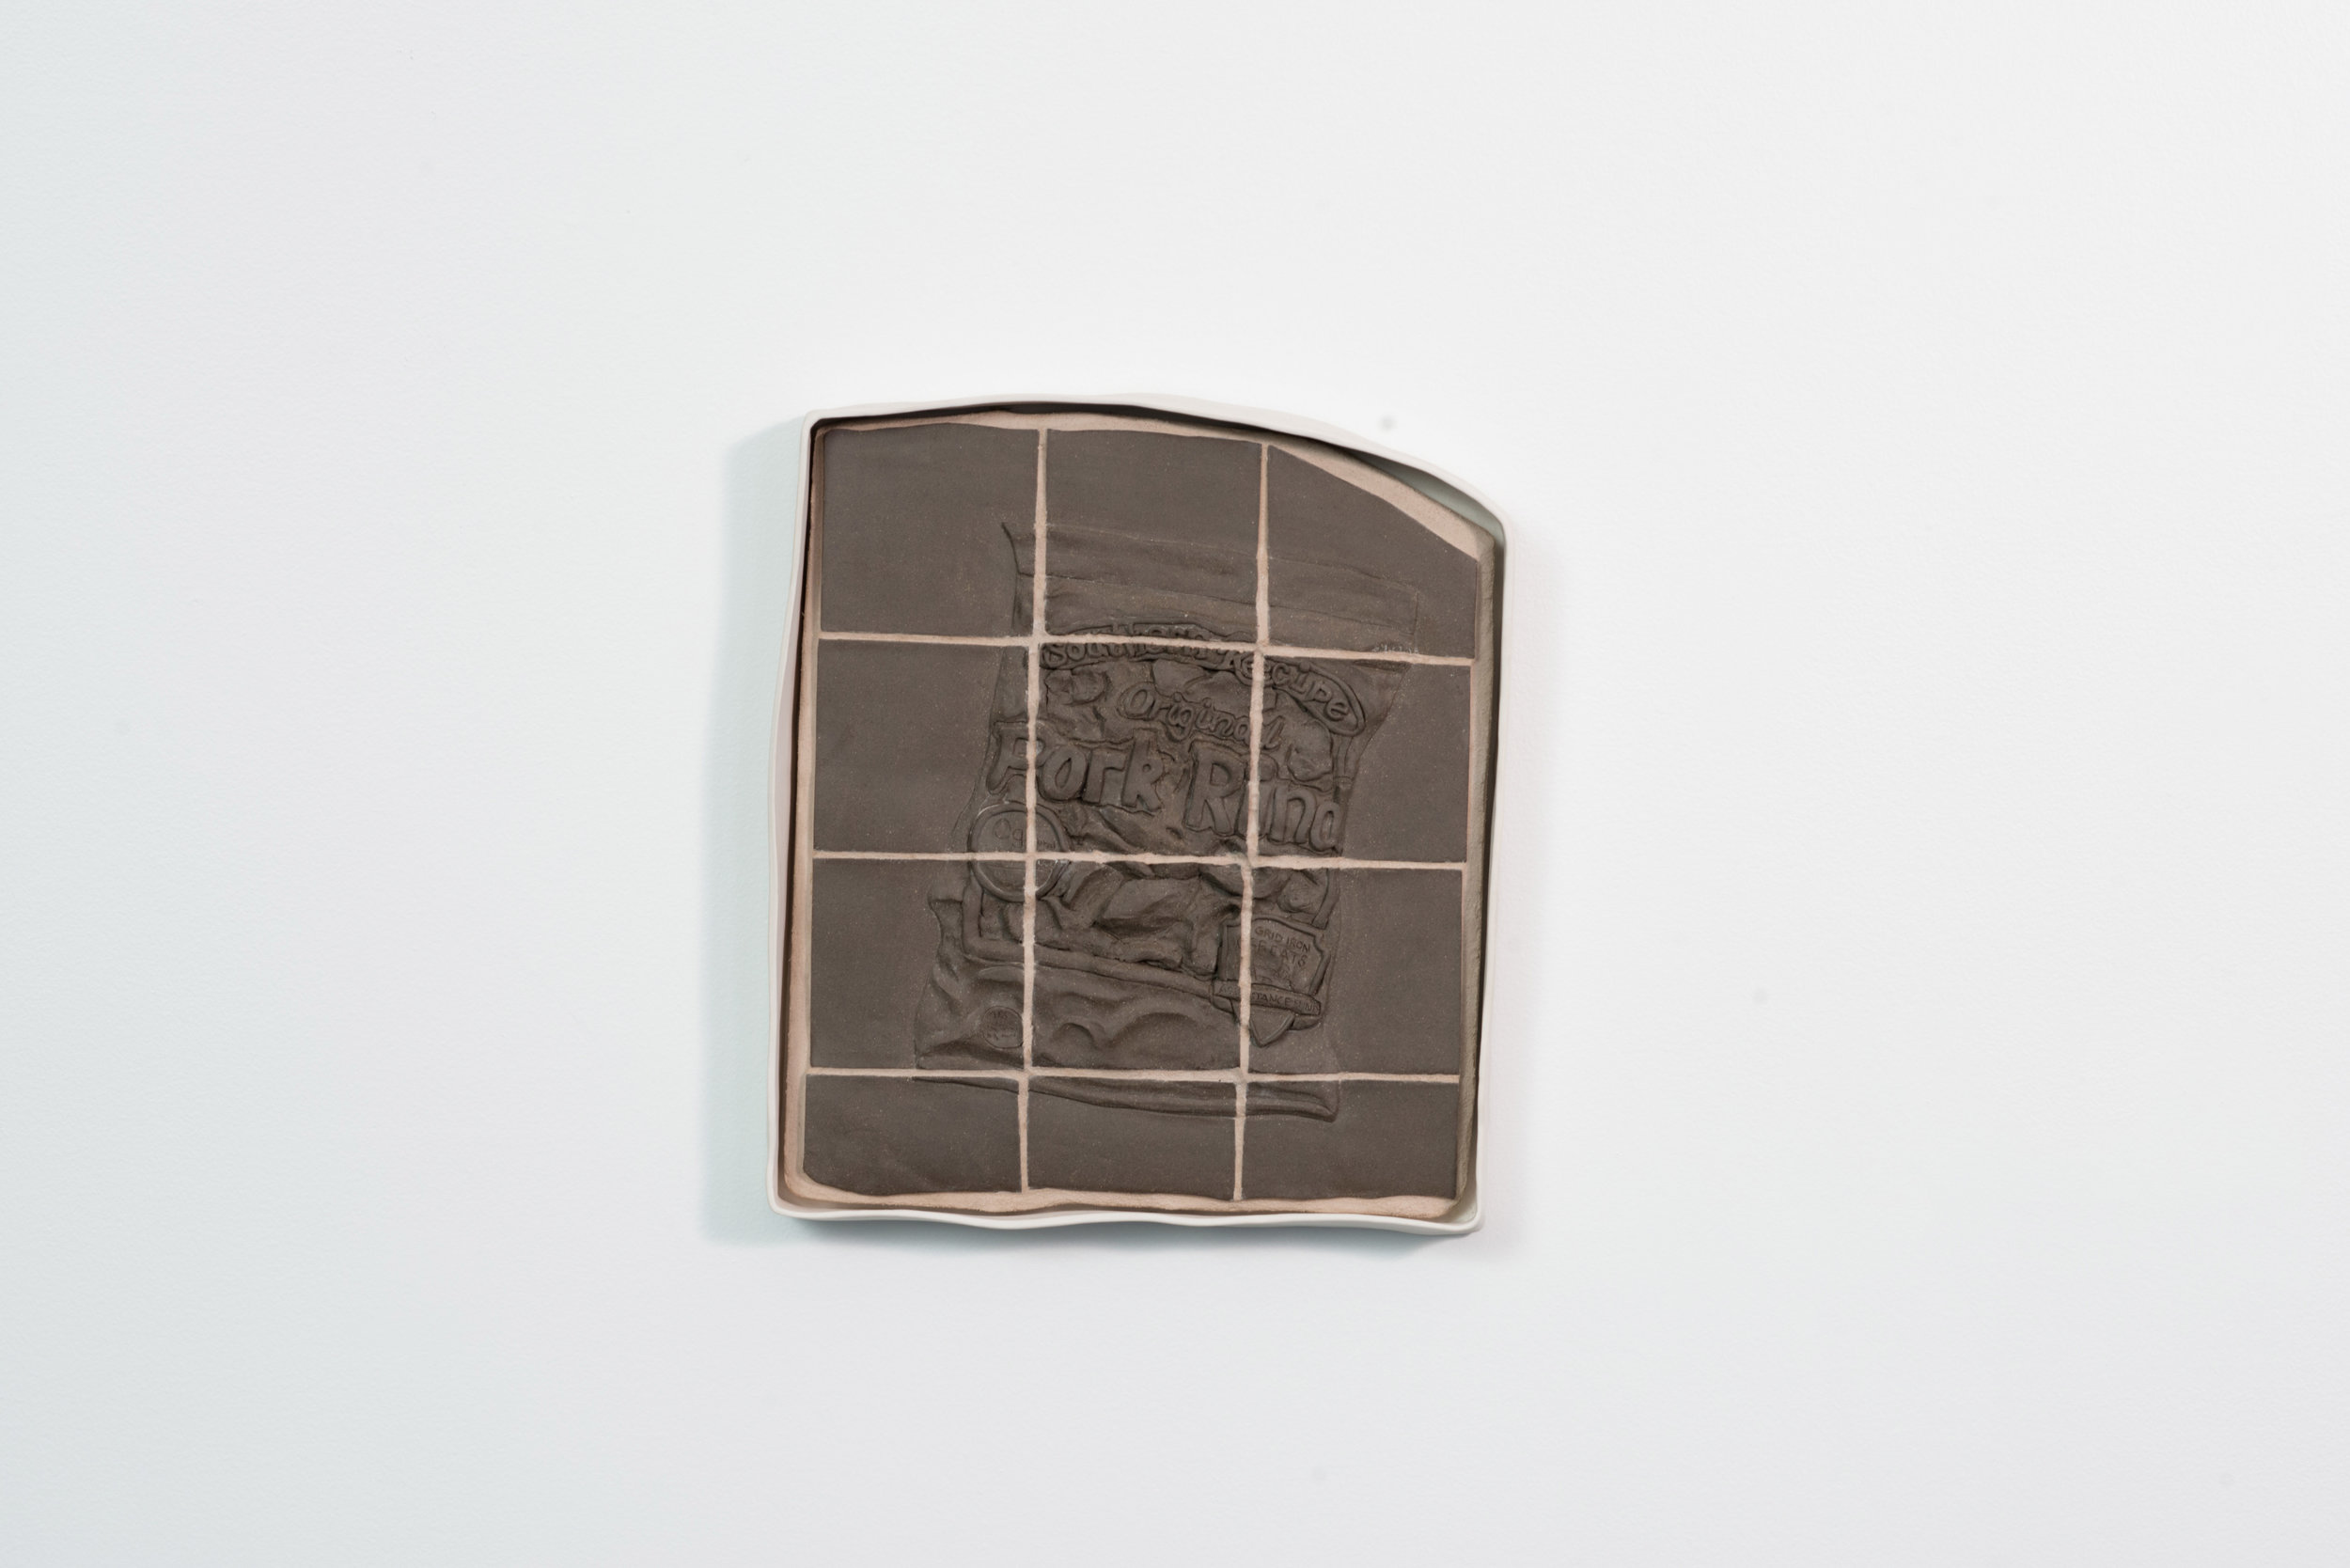 """Southern Recipe  2016 Porcelain frame, Stoneware, Grout, Plywood 15"""" x 13.5"""" x 3""""  Photograph courtesy of MCA Denver"""